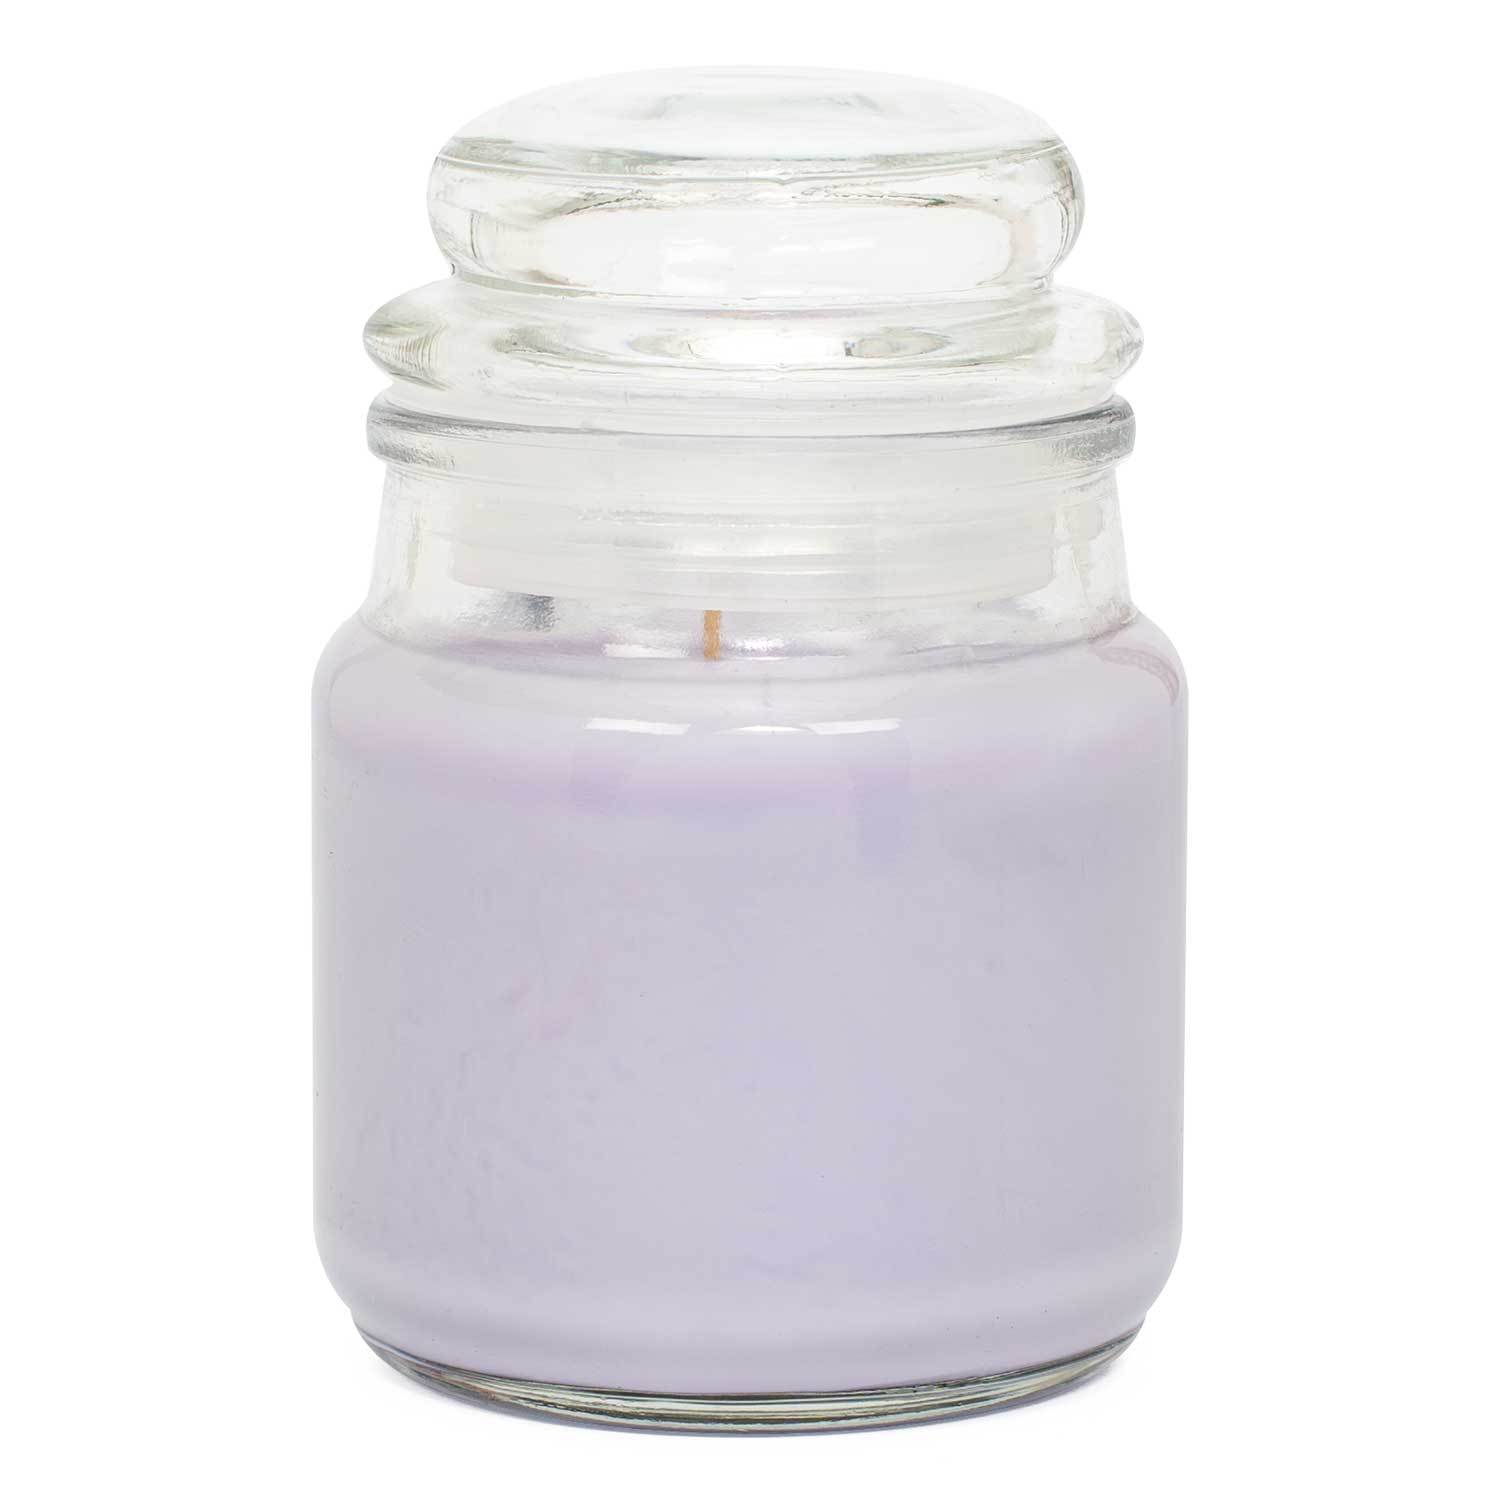 Lavender Thyme Scented Mini Candle - Candlemart.com